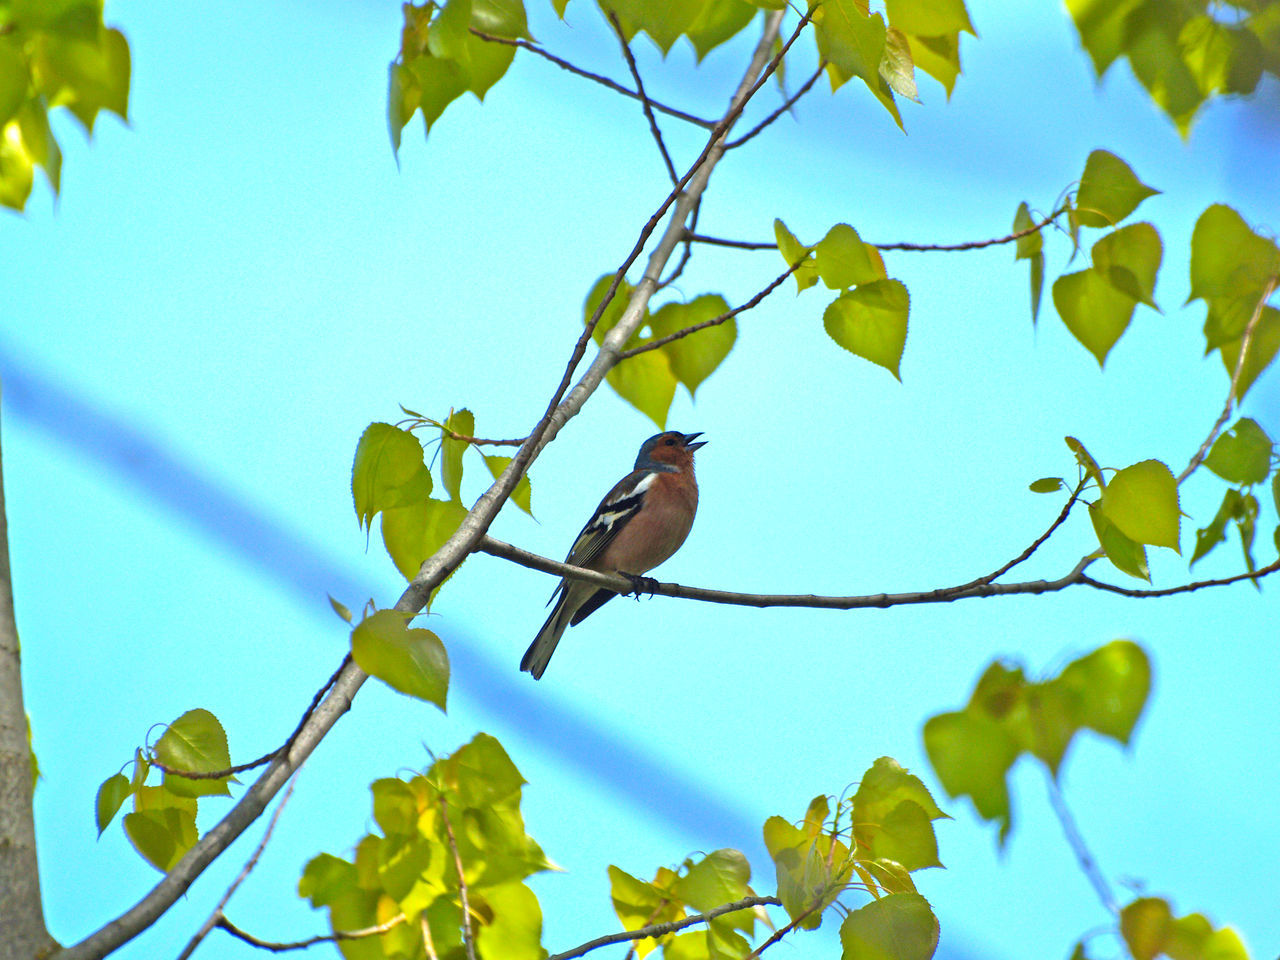 Animal Themes Animal Wildlife Animals In The Wild Beauty In Nature Bird Birds Branch Chaffinch Close-up Day Fringilla Fringilla Coelebs Leaf Low Angle View Nature No People One Animal Outdoors Perching Song Birds Tree Trill Trilling Warbler